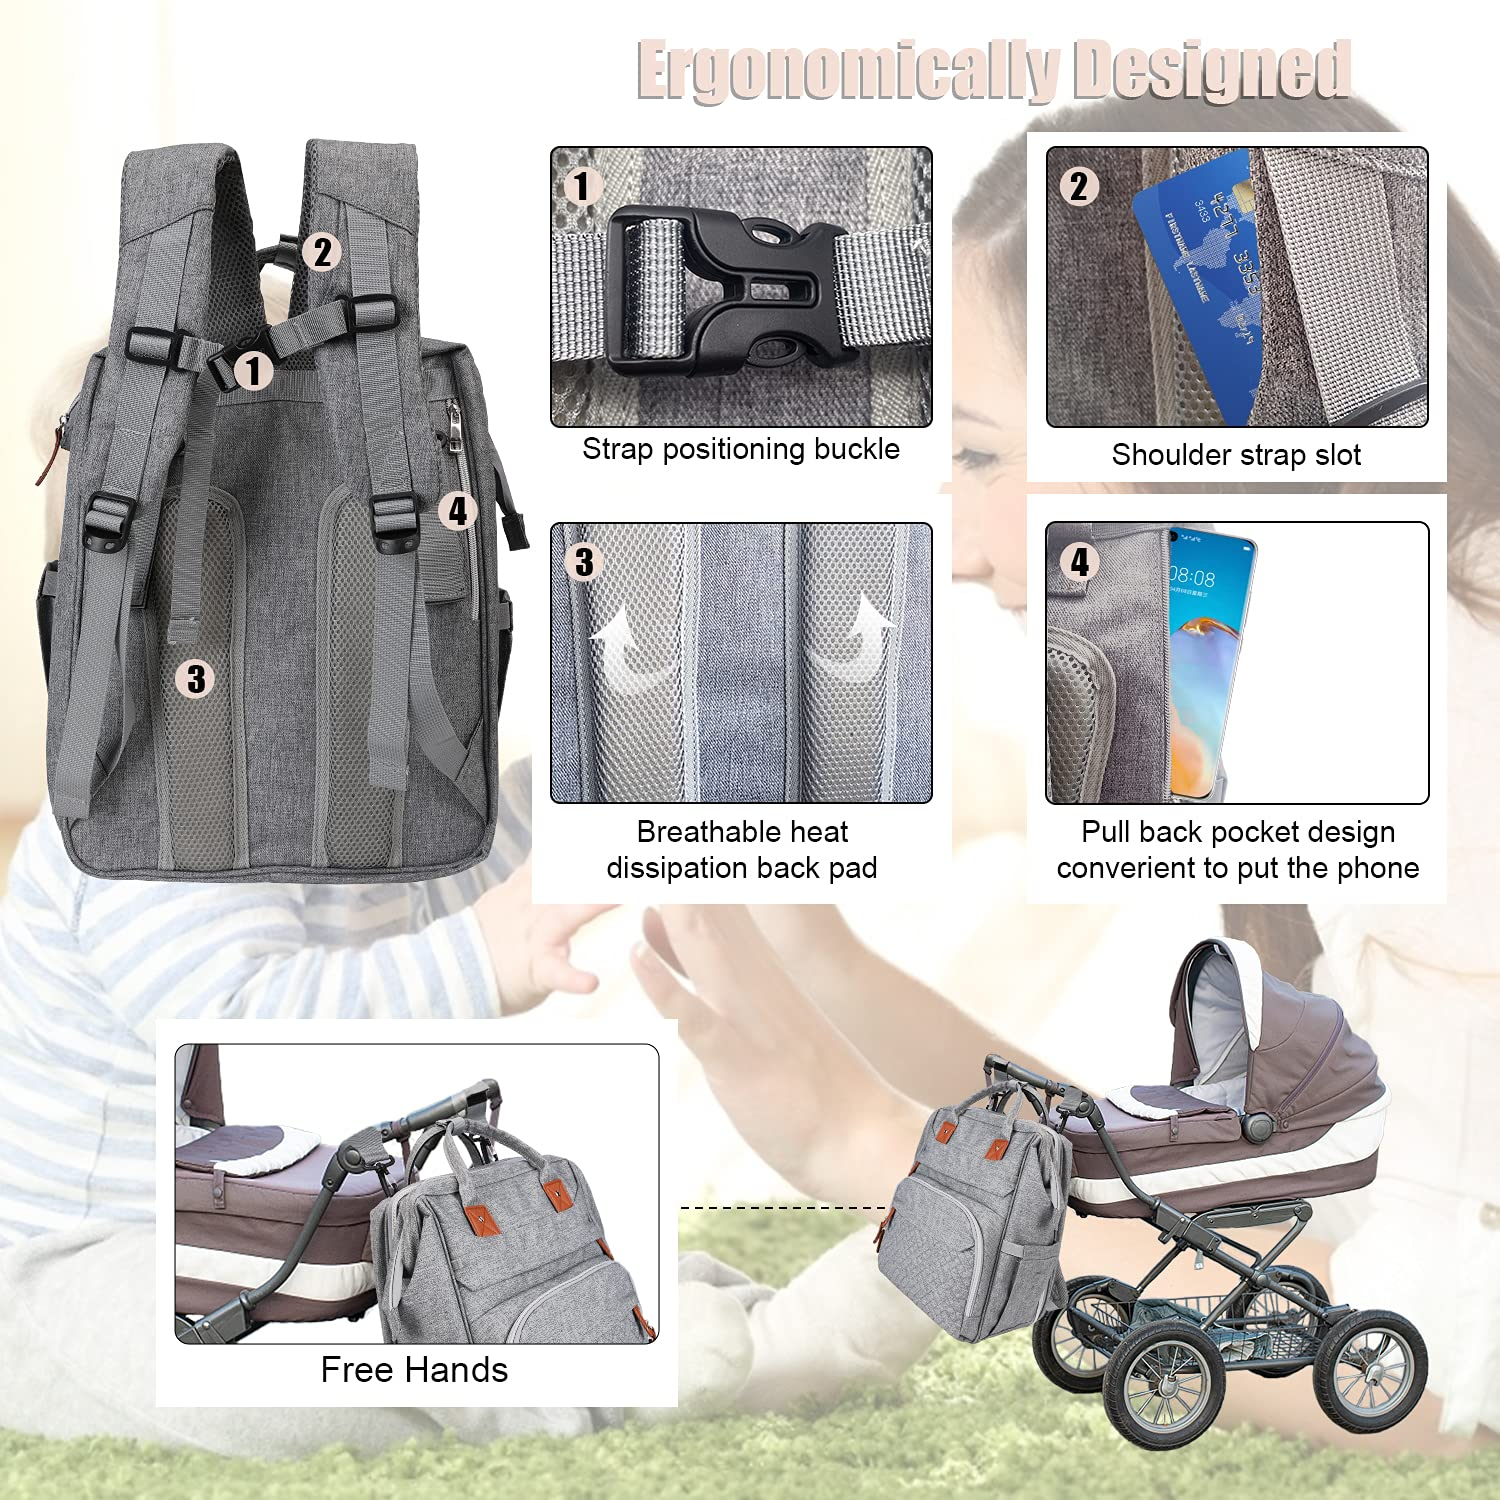 Puninoto Diaper Bag, Foldable Diaper Bag Tote with Changing Station, Portable Baby Travel Diaper Bag Backpack, Baby Crib with Sunshade Mosquito Net, Large Capacity Multi-Function Waterproof (Grey)